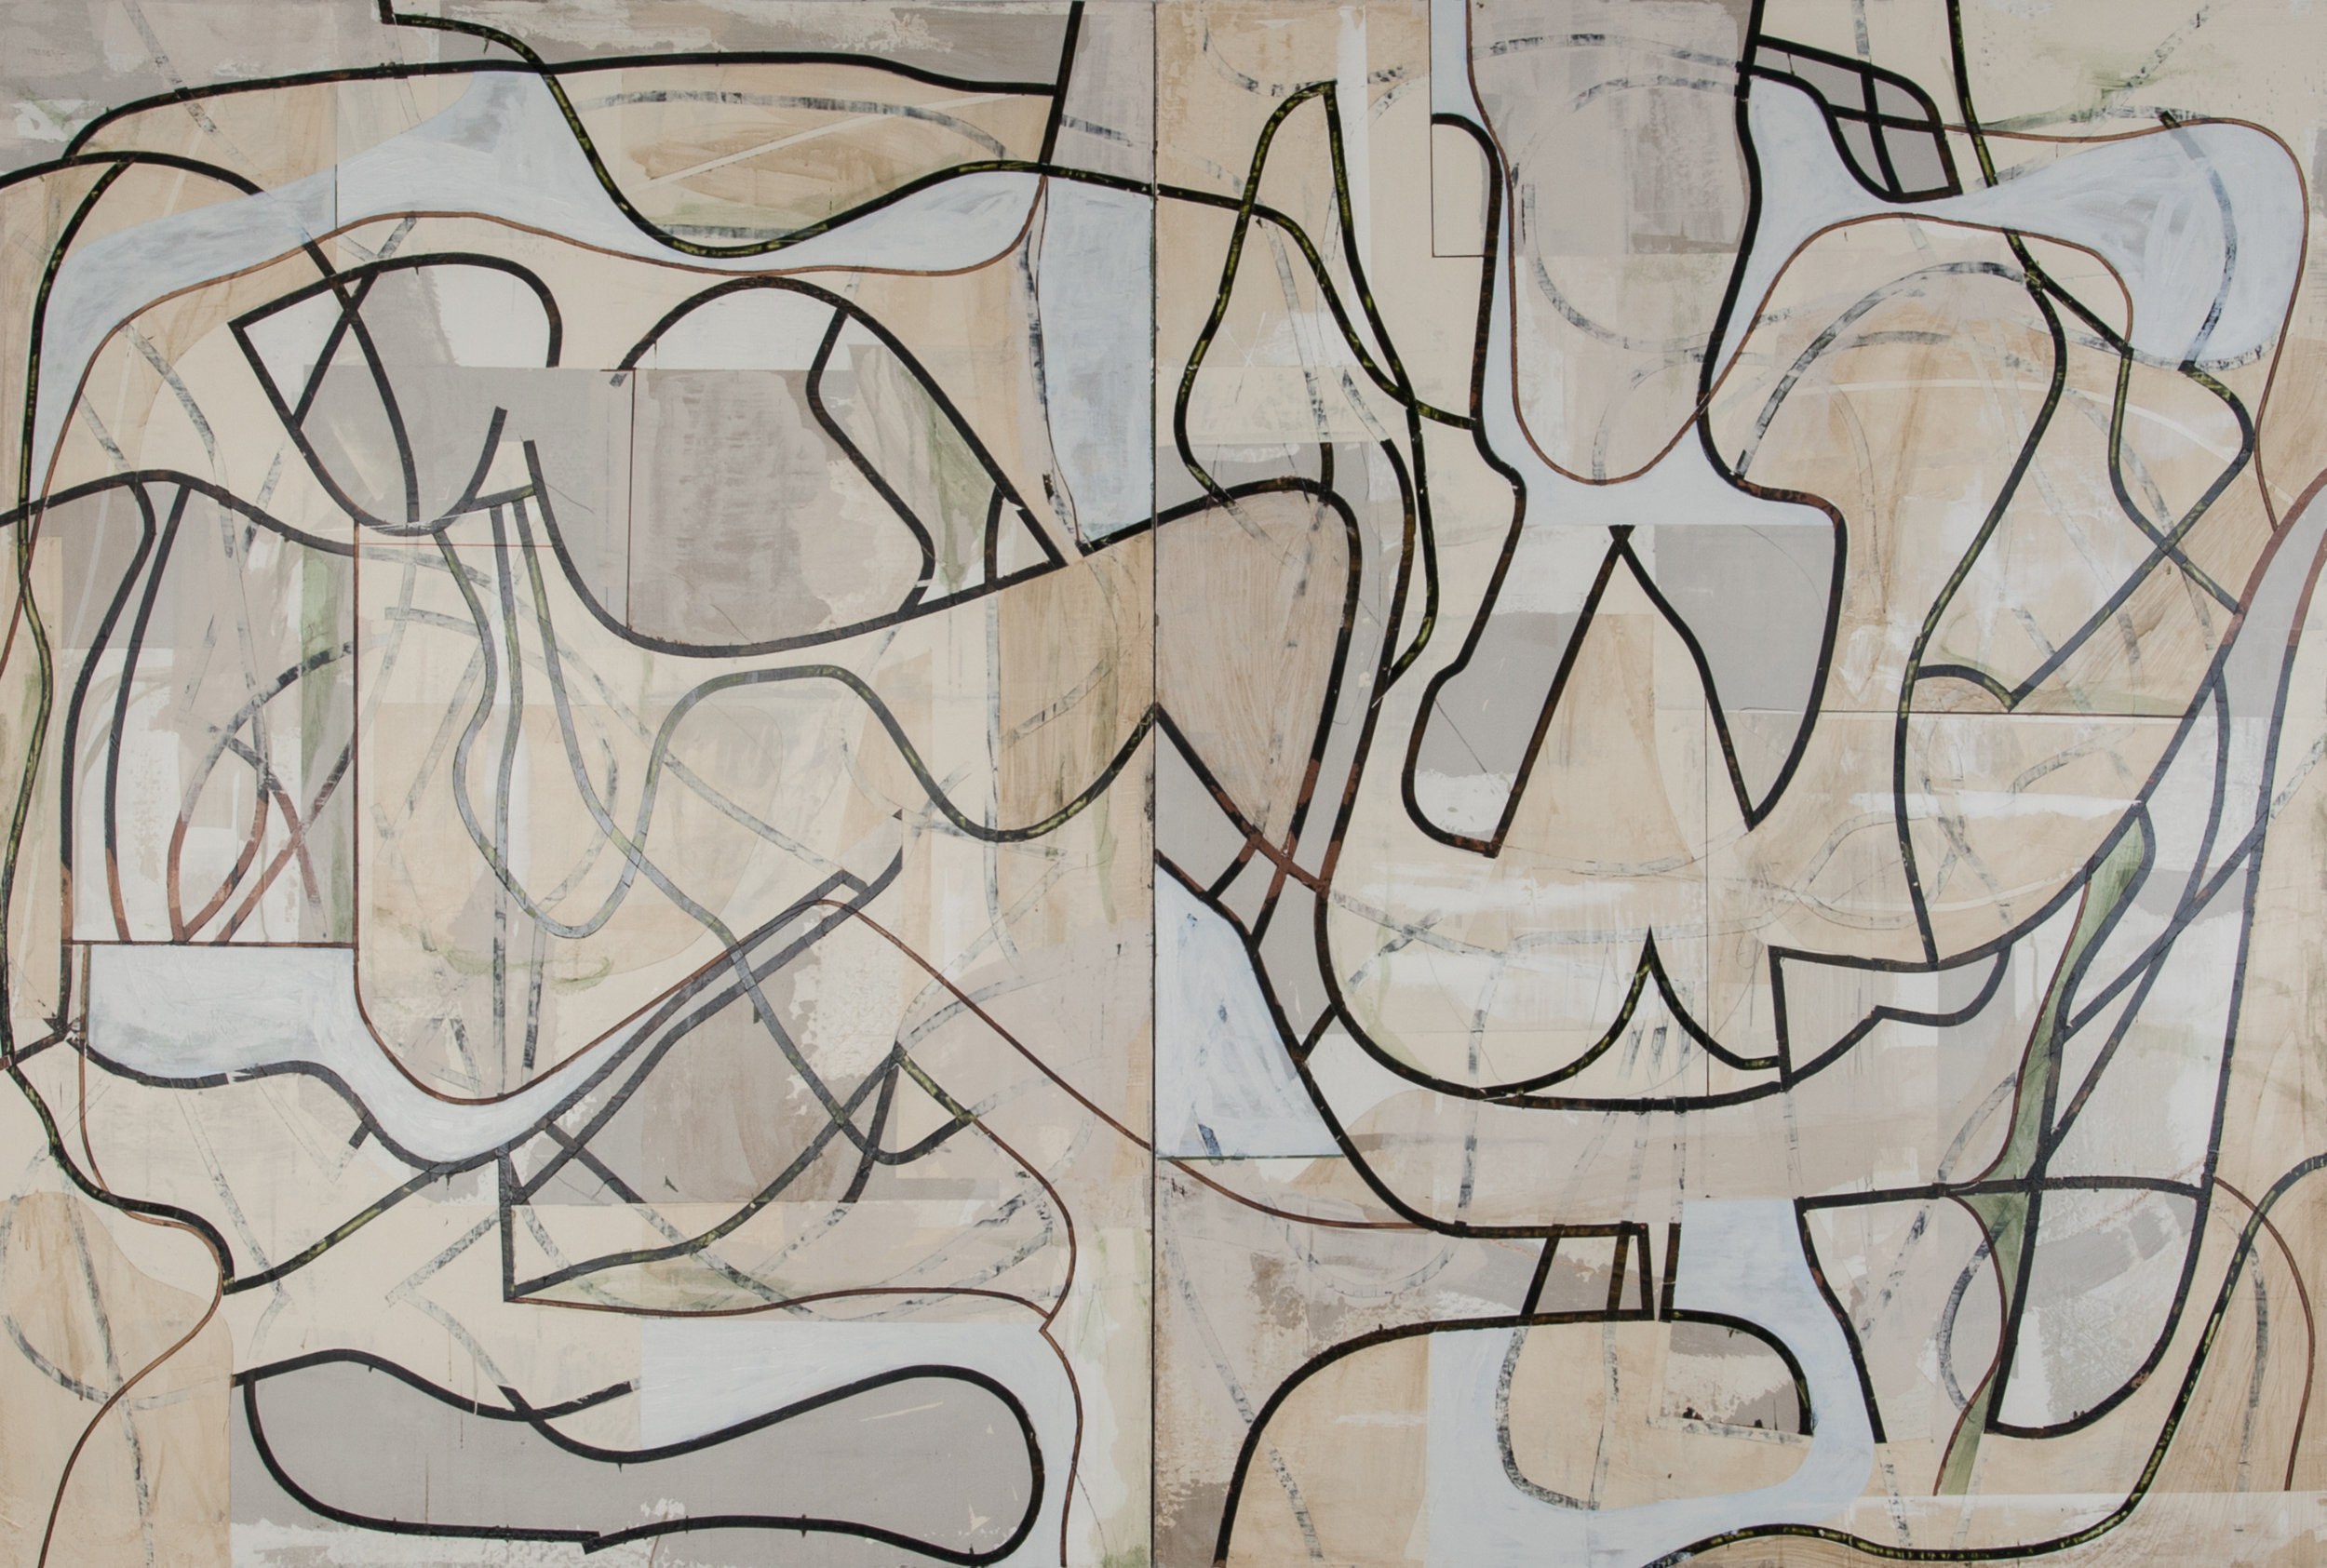 Untitled Diptych III